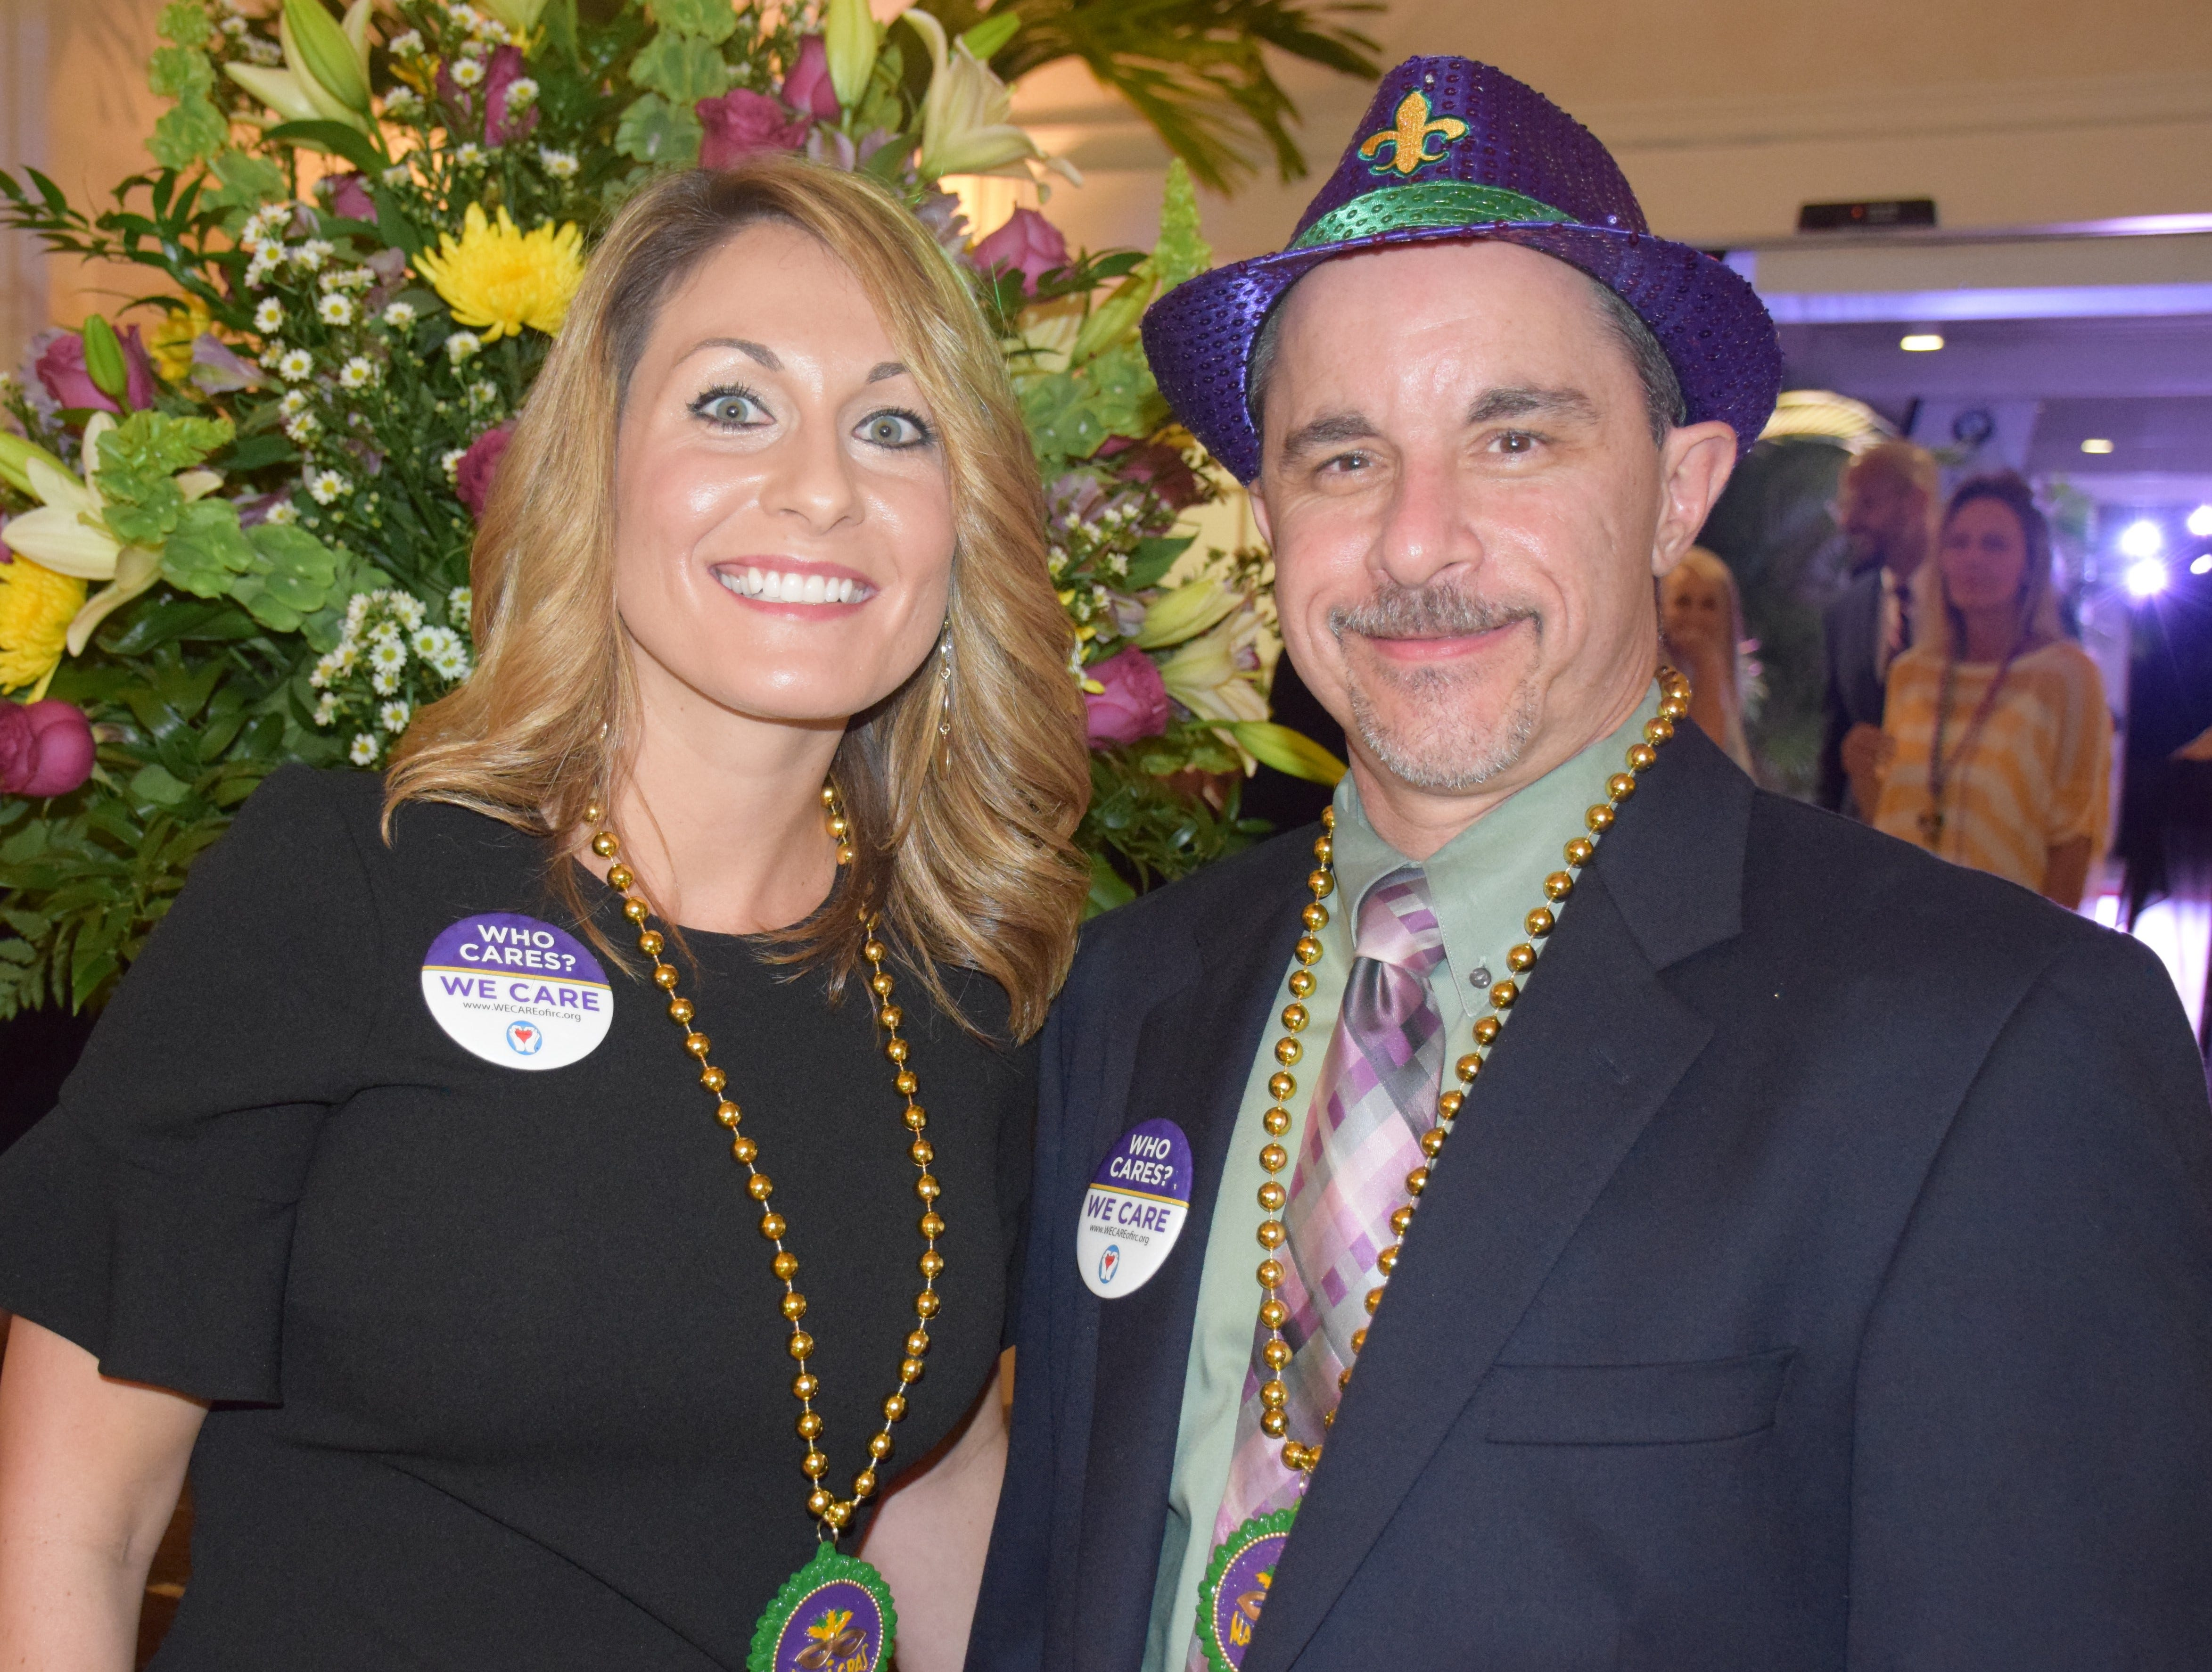 Co-chairs Dr. Brian Hartman and Elizabeth White